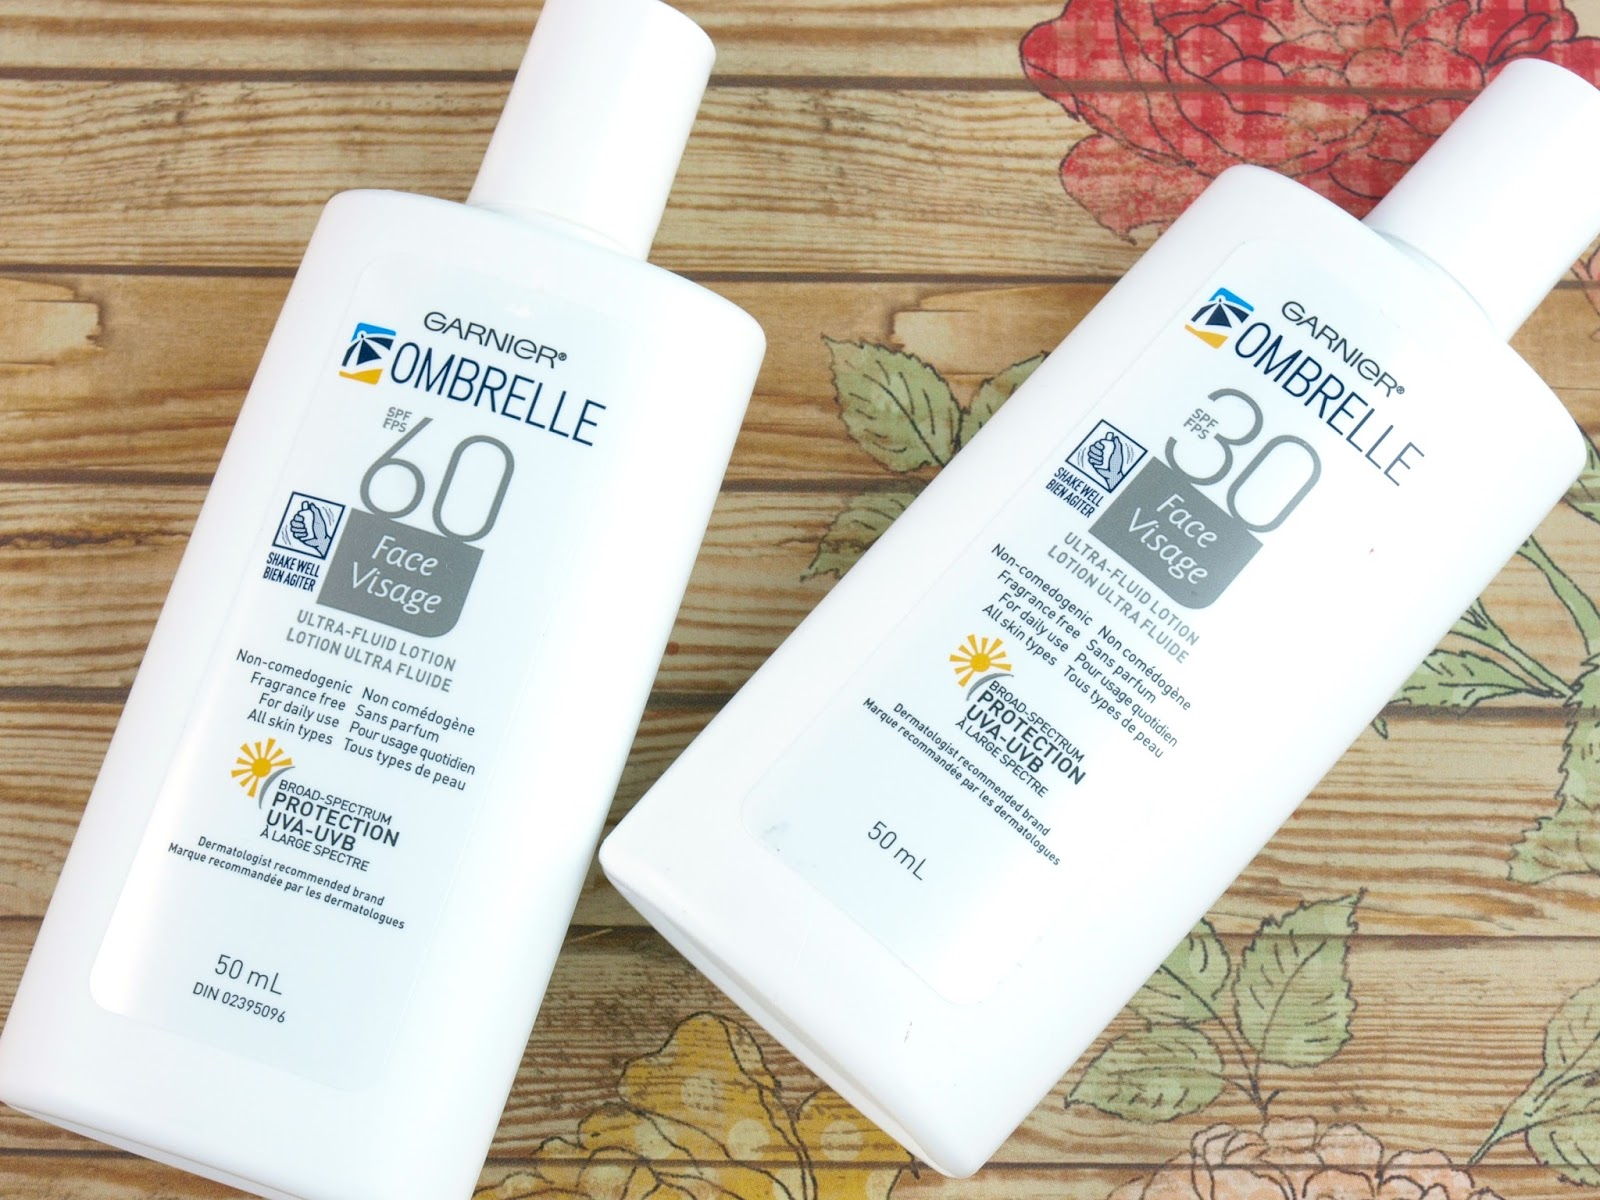 Garnier Ombrelle Ultra-Fluid Lotion SPF 30 & SPF 60 Sunscreen: Review